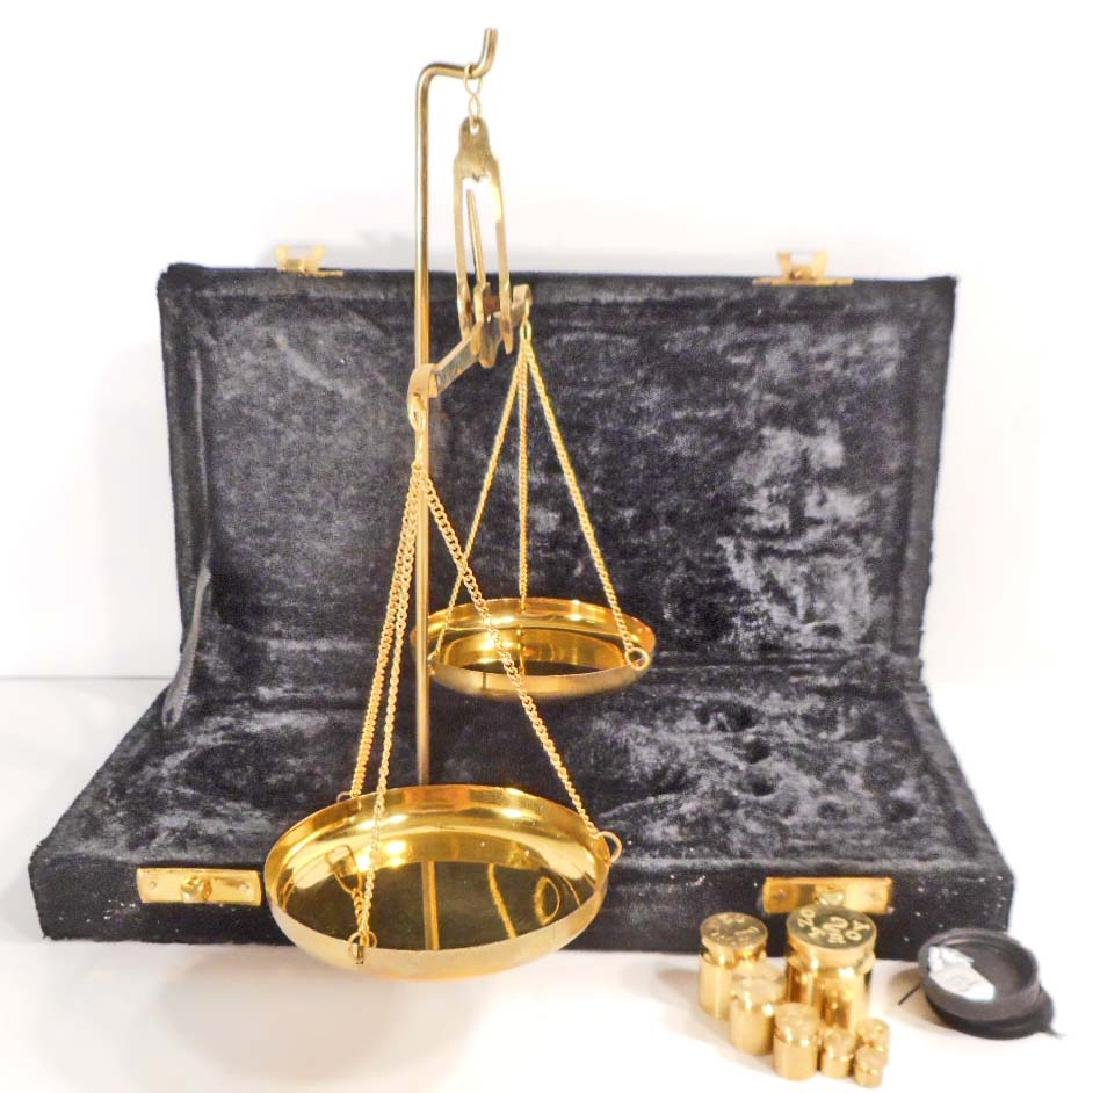 SOLID BRASS GOLD SCALE IN VELVET CASE - 2 OZ.